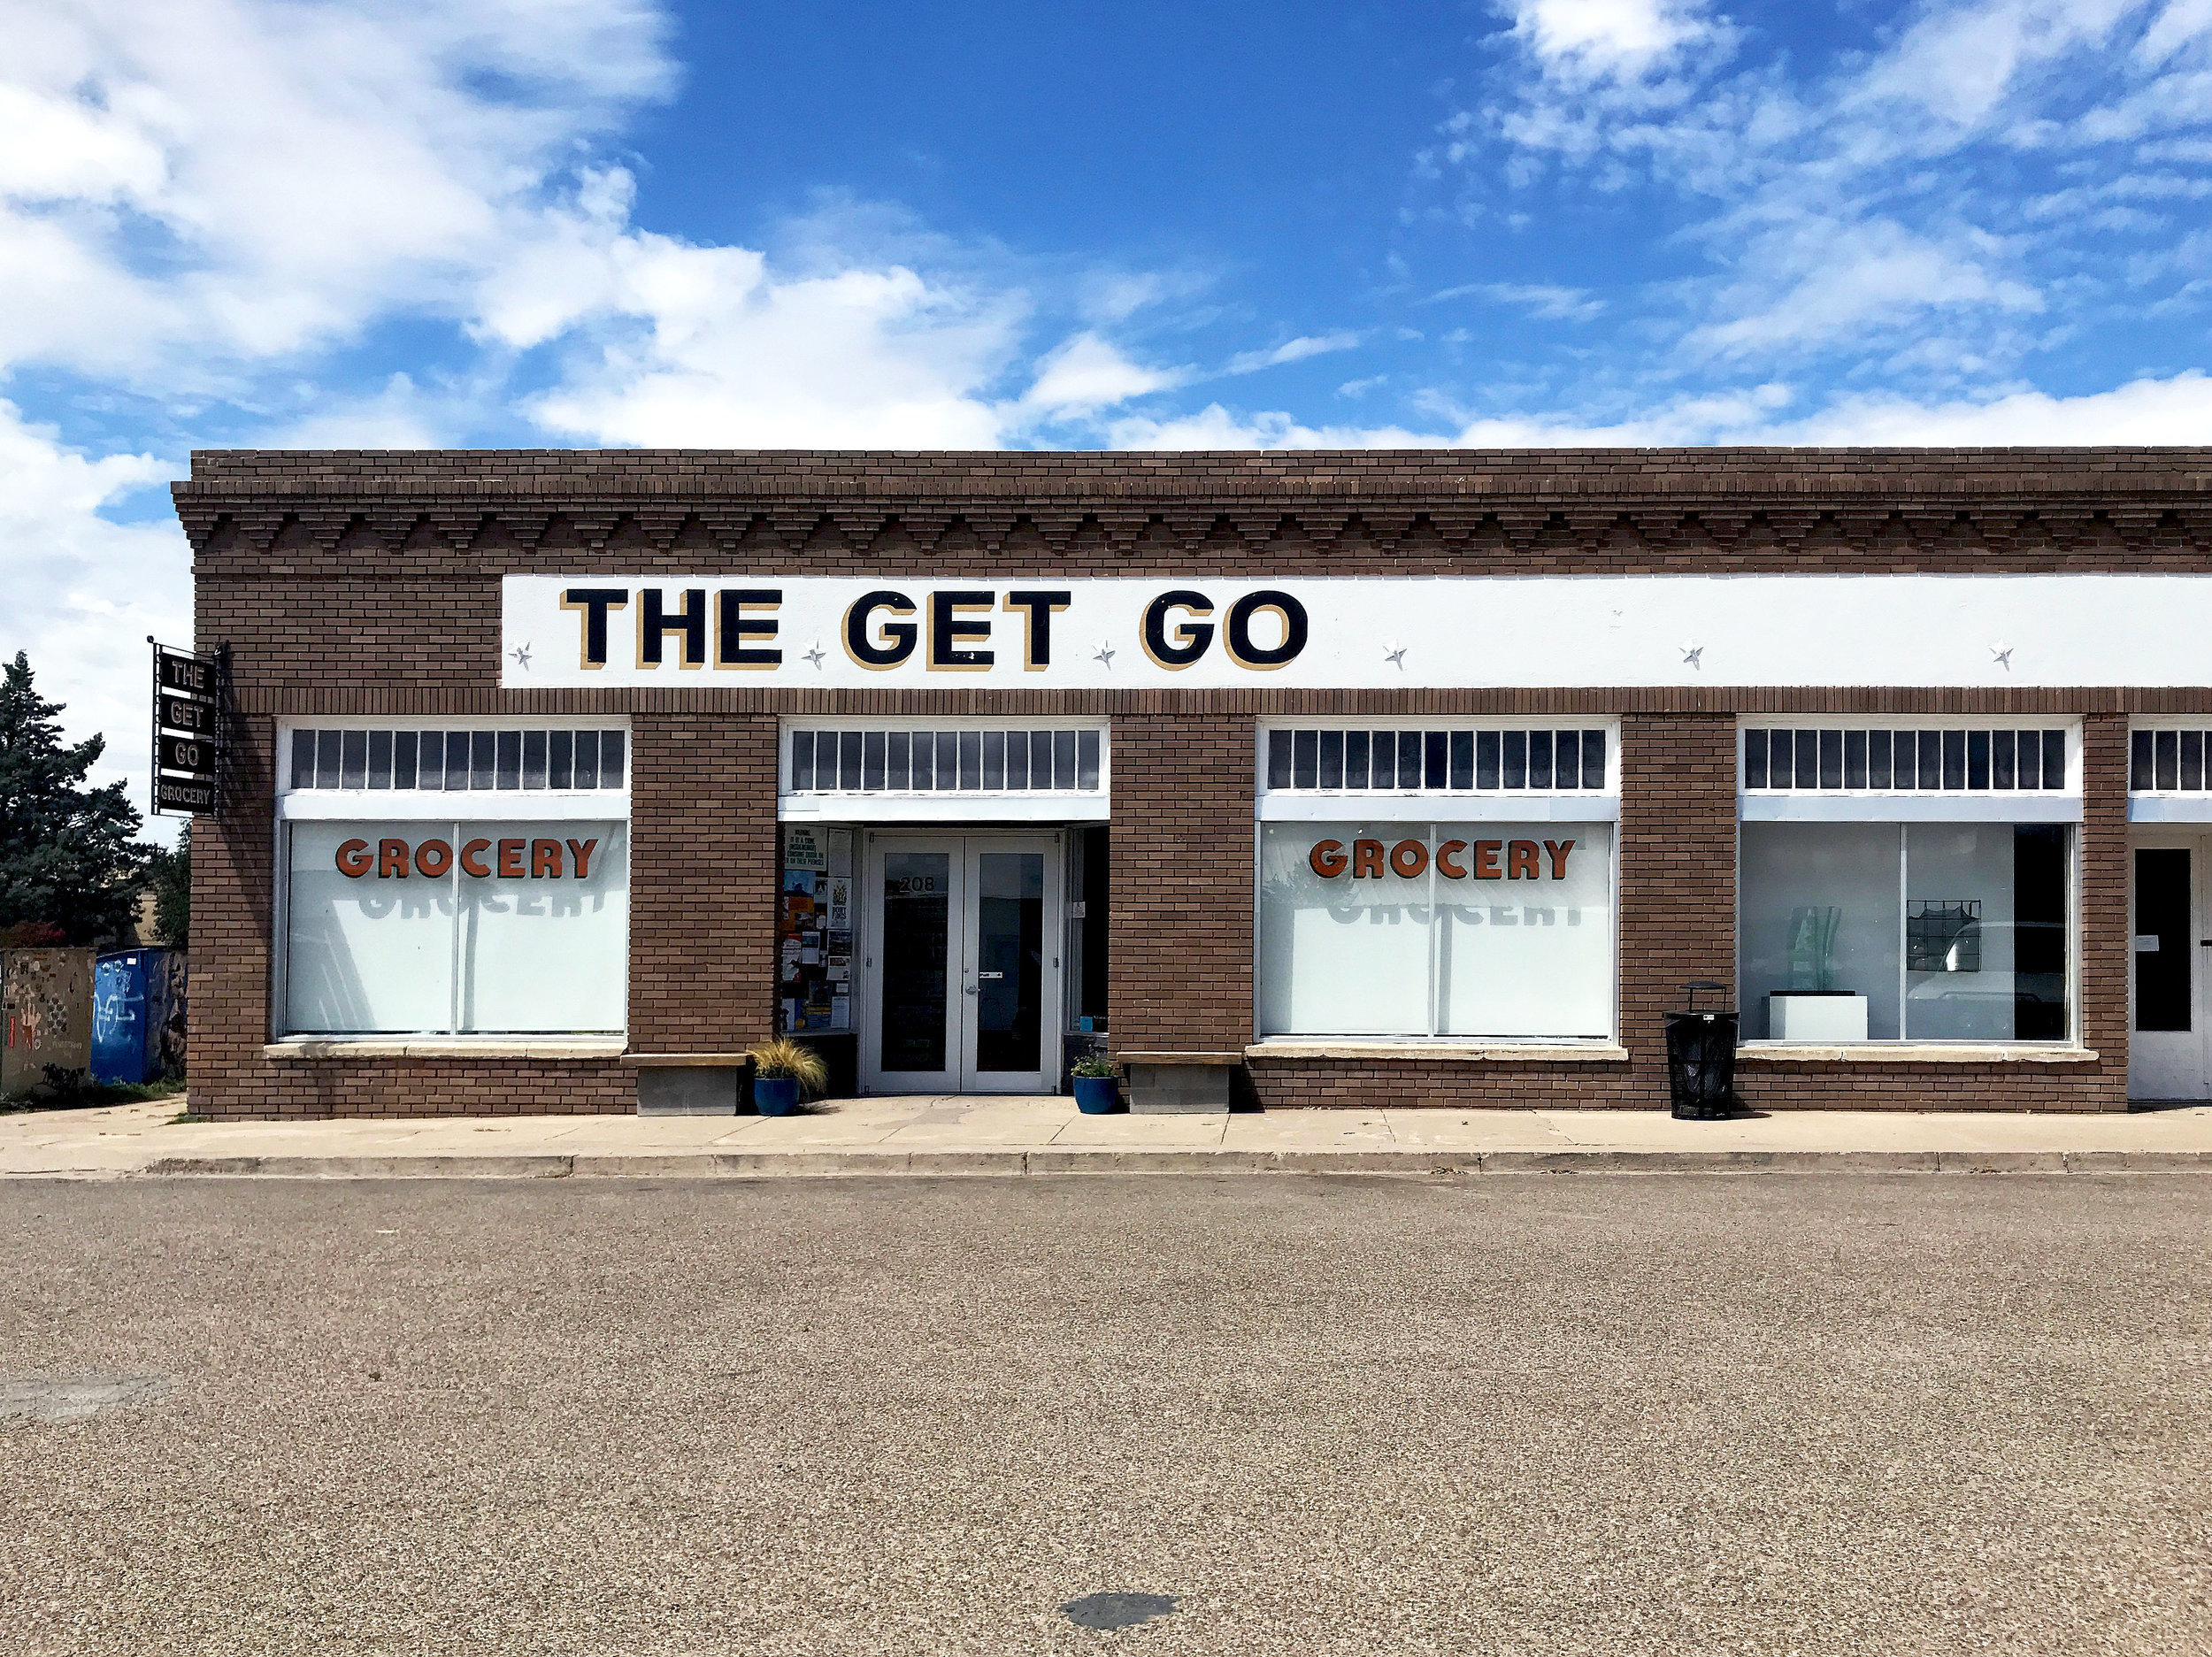 Pieceology-Vintage-The-Get-Go-Grocery-Store-Marfa-Texas.jpg